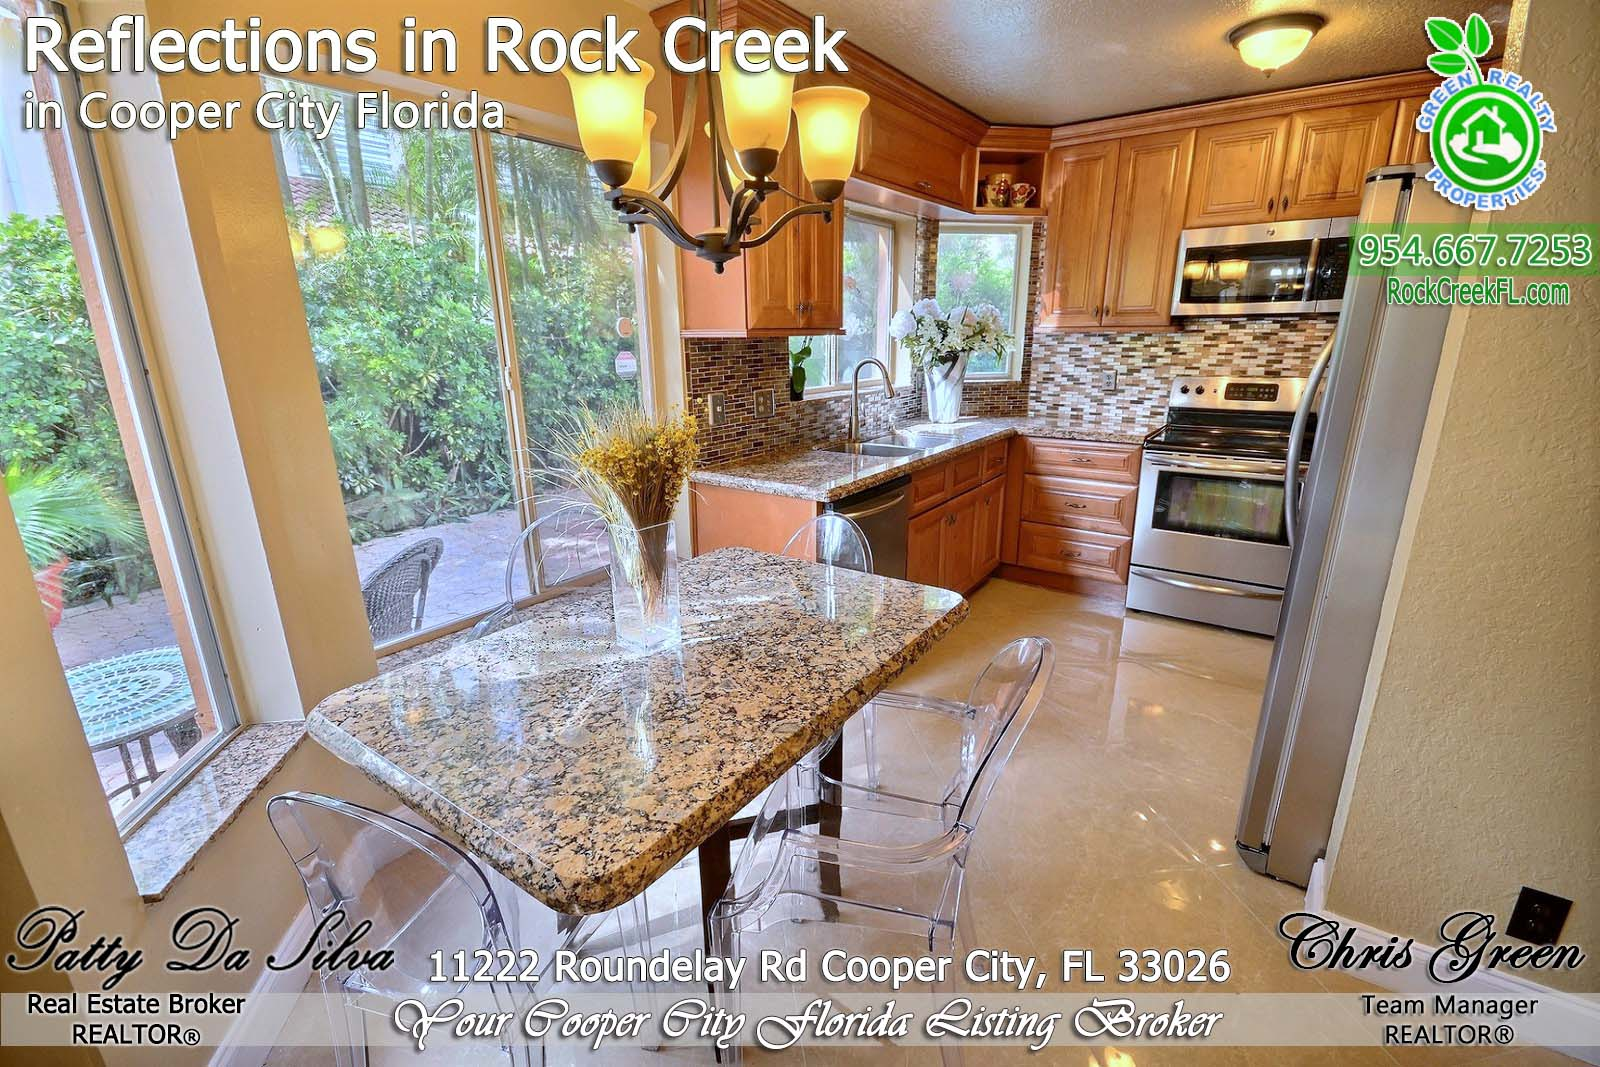 Cooper City Homes For Sale - Reflections in Rock Creek Homes Fo Sale (9)